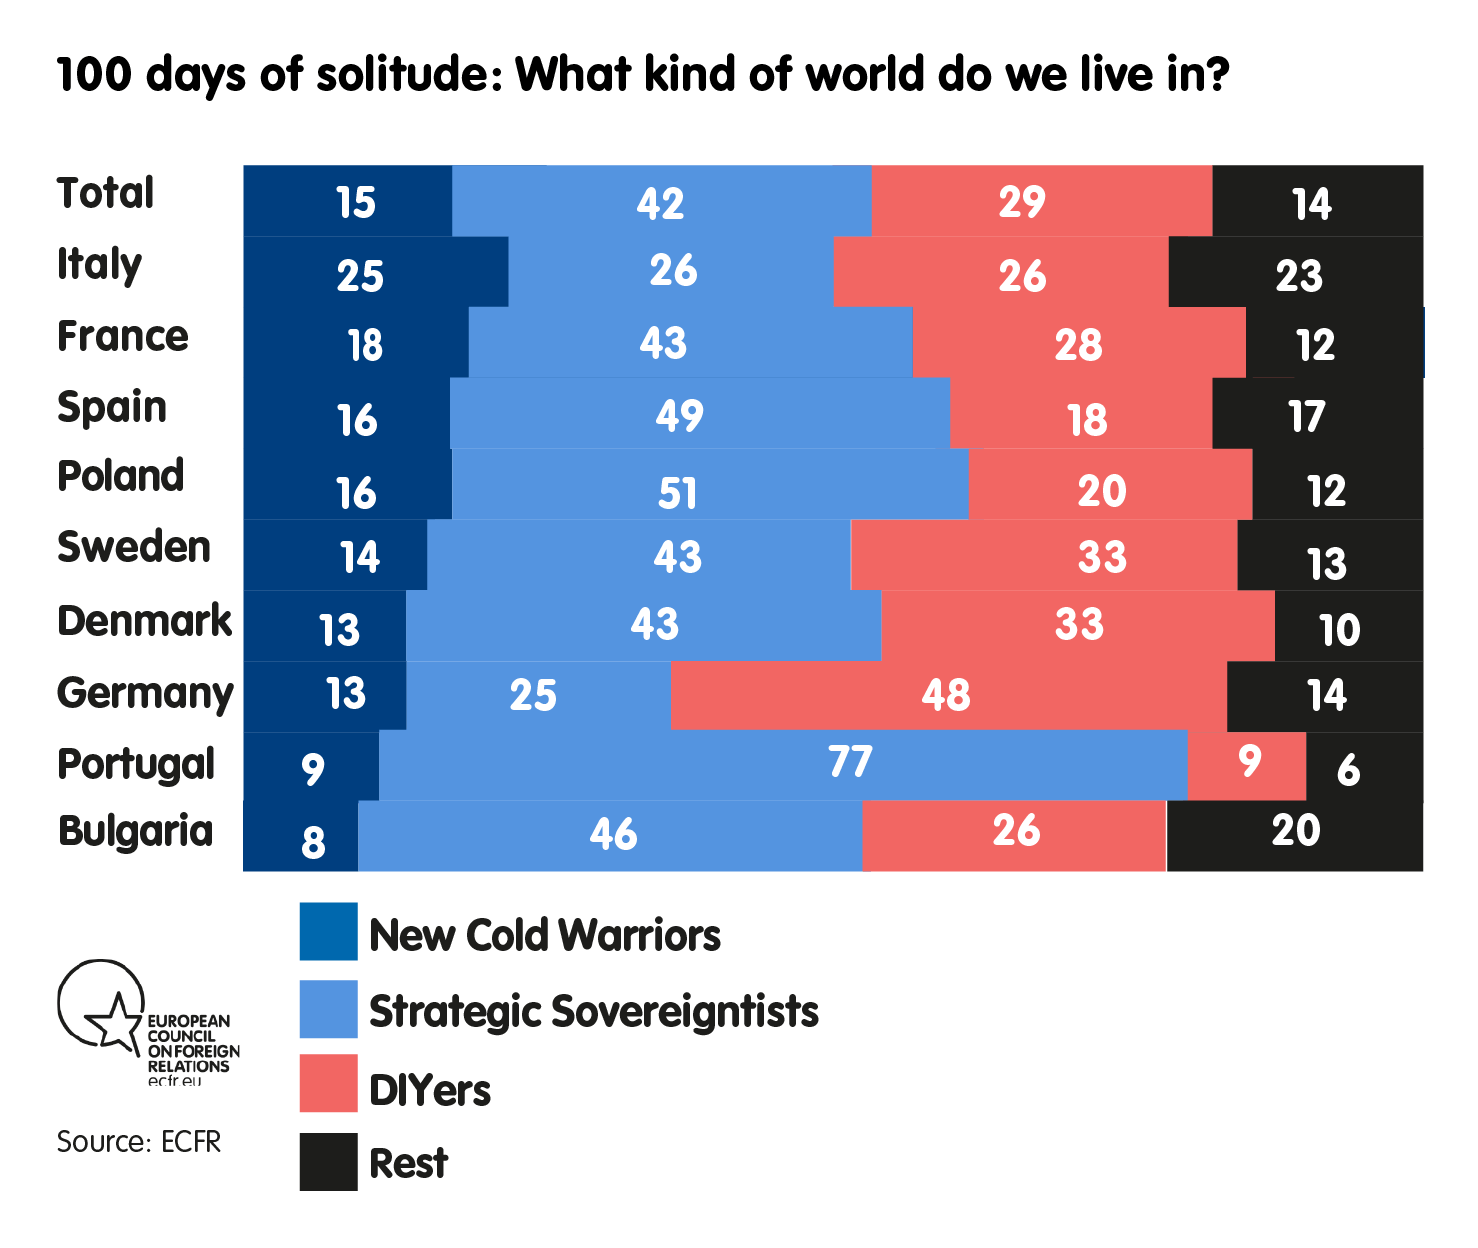 100 days of solitude: What kind of world do we live in?